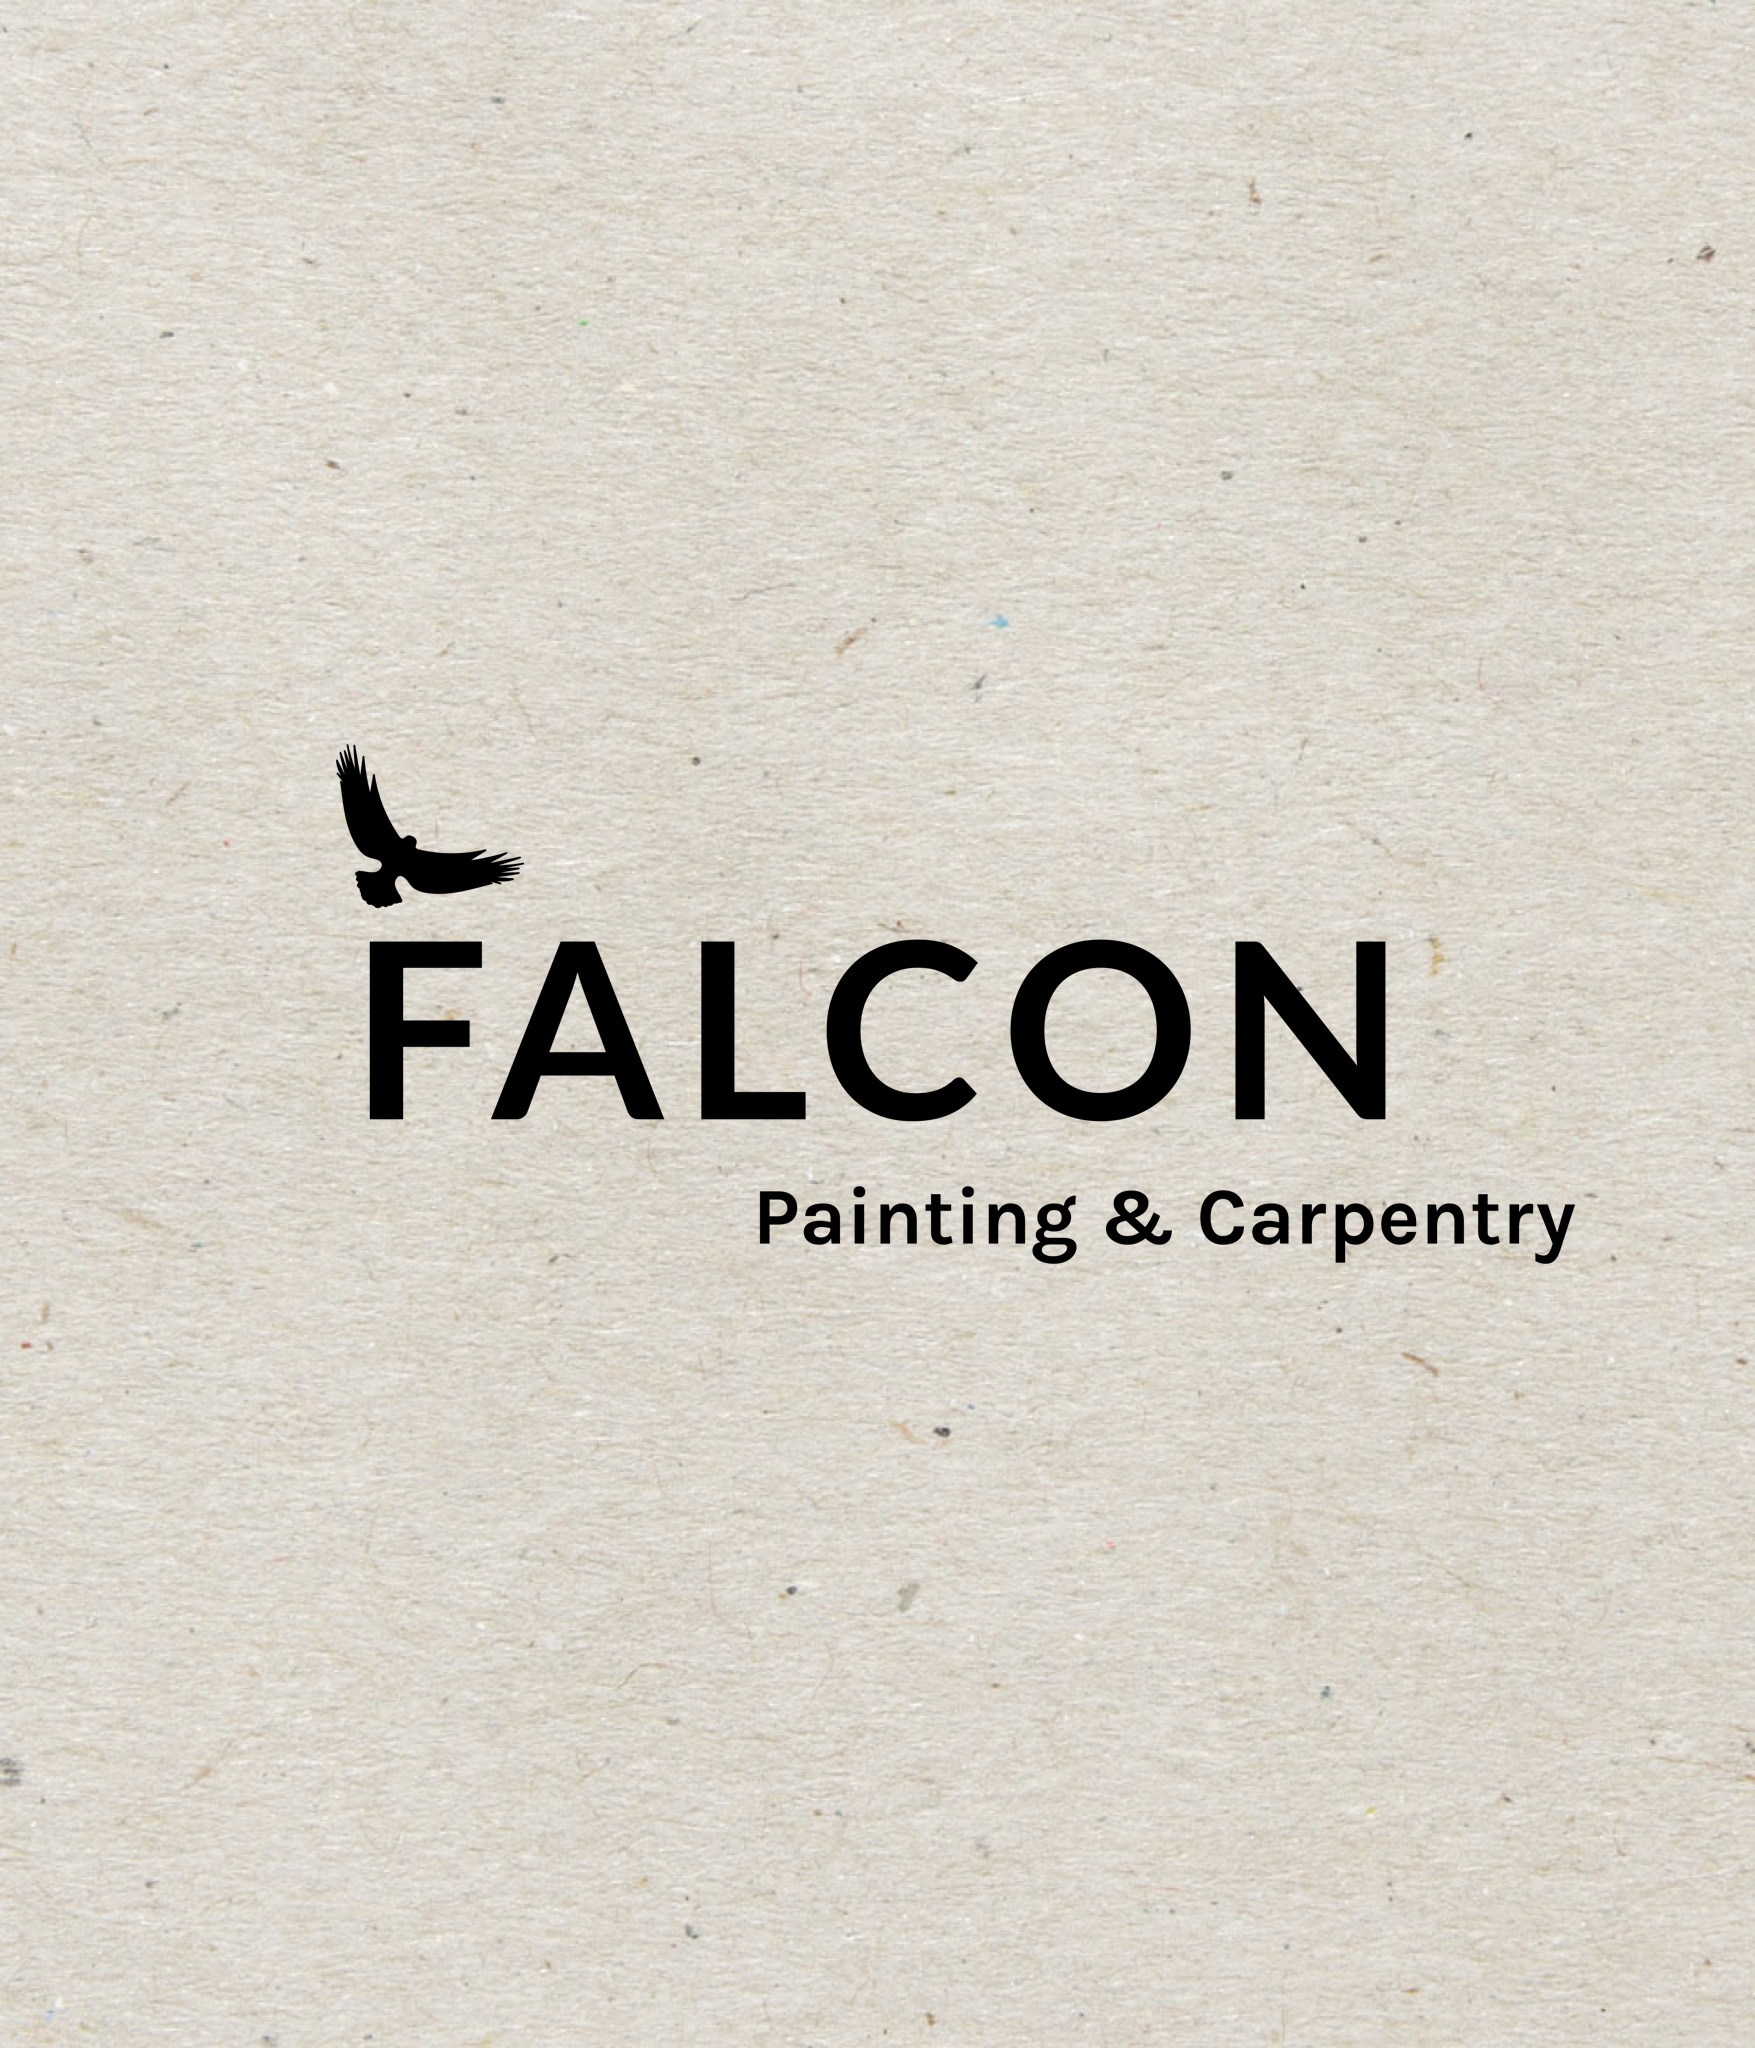 Falcon Painting and Carpentry image